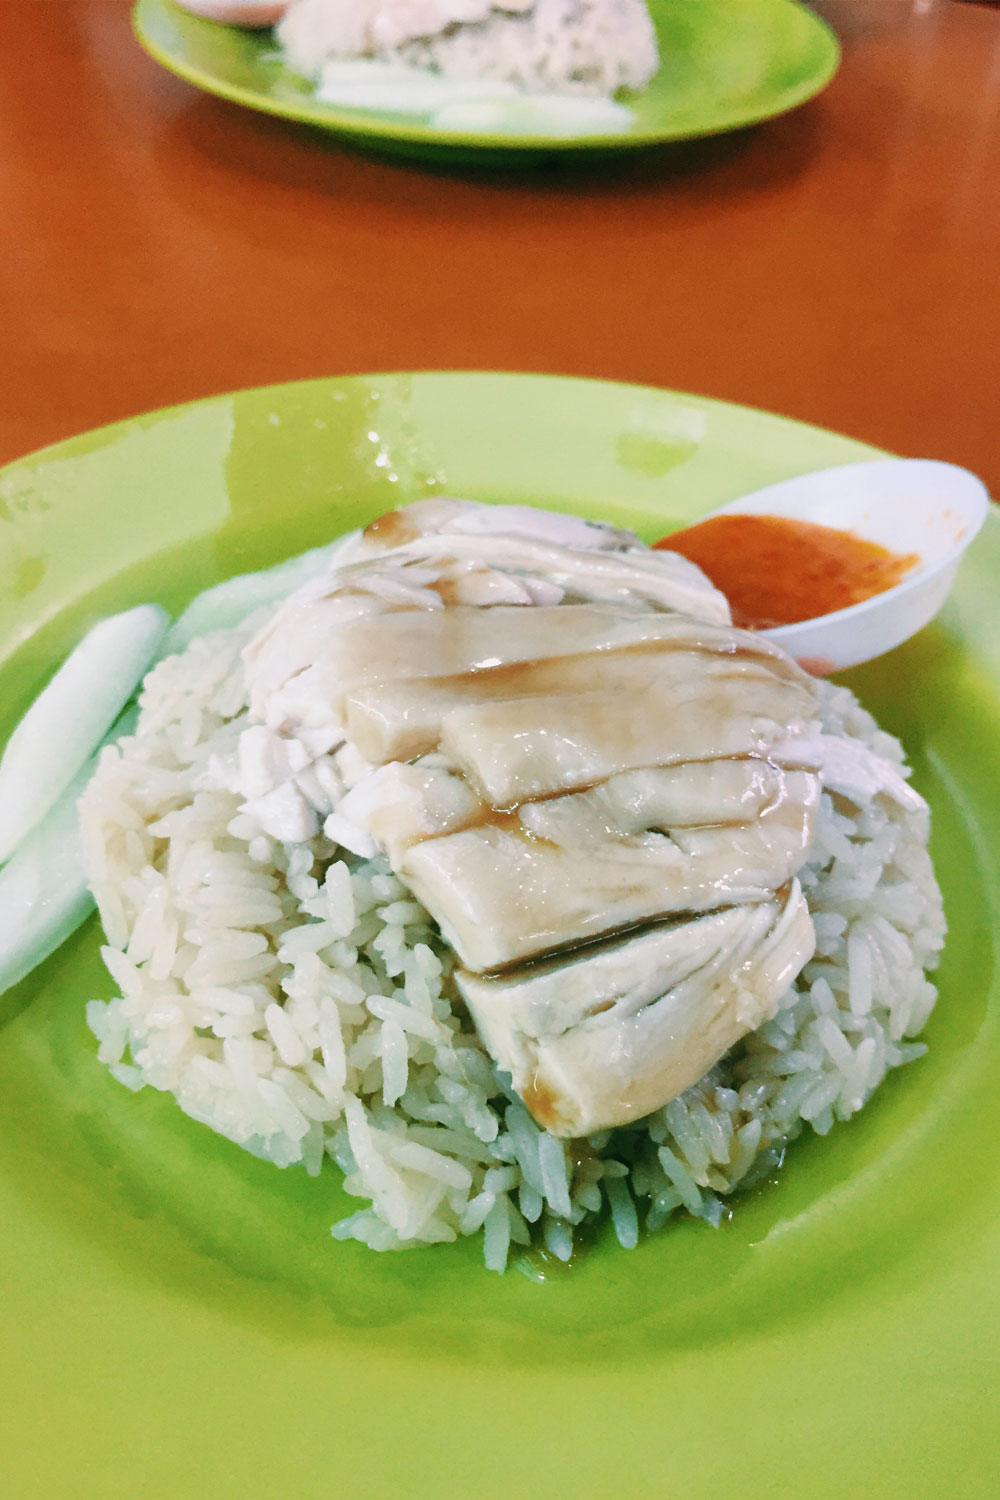 Chicken and rice on a green plate